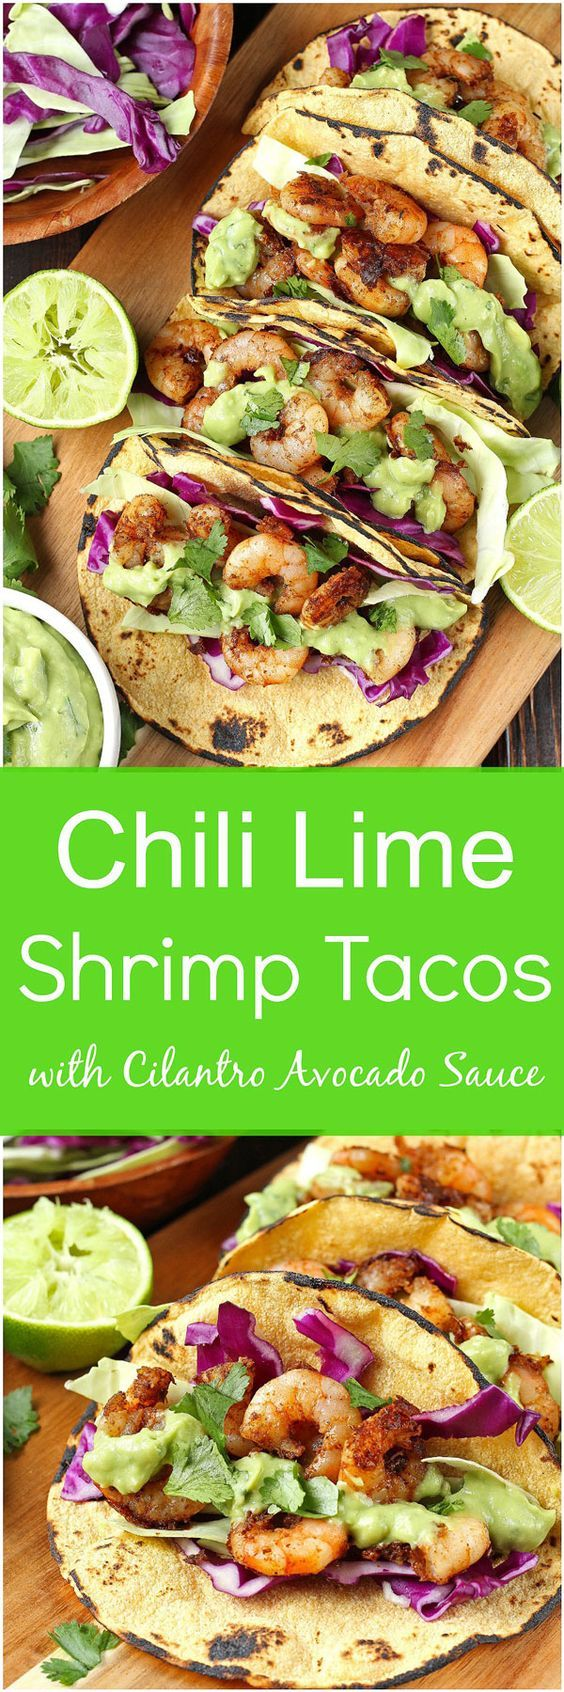 Chili Lime Shrimp Tacos with Cilantro Avocado Sauce